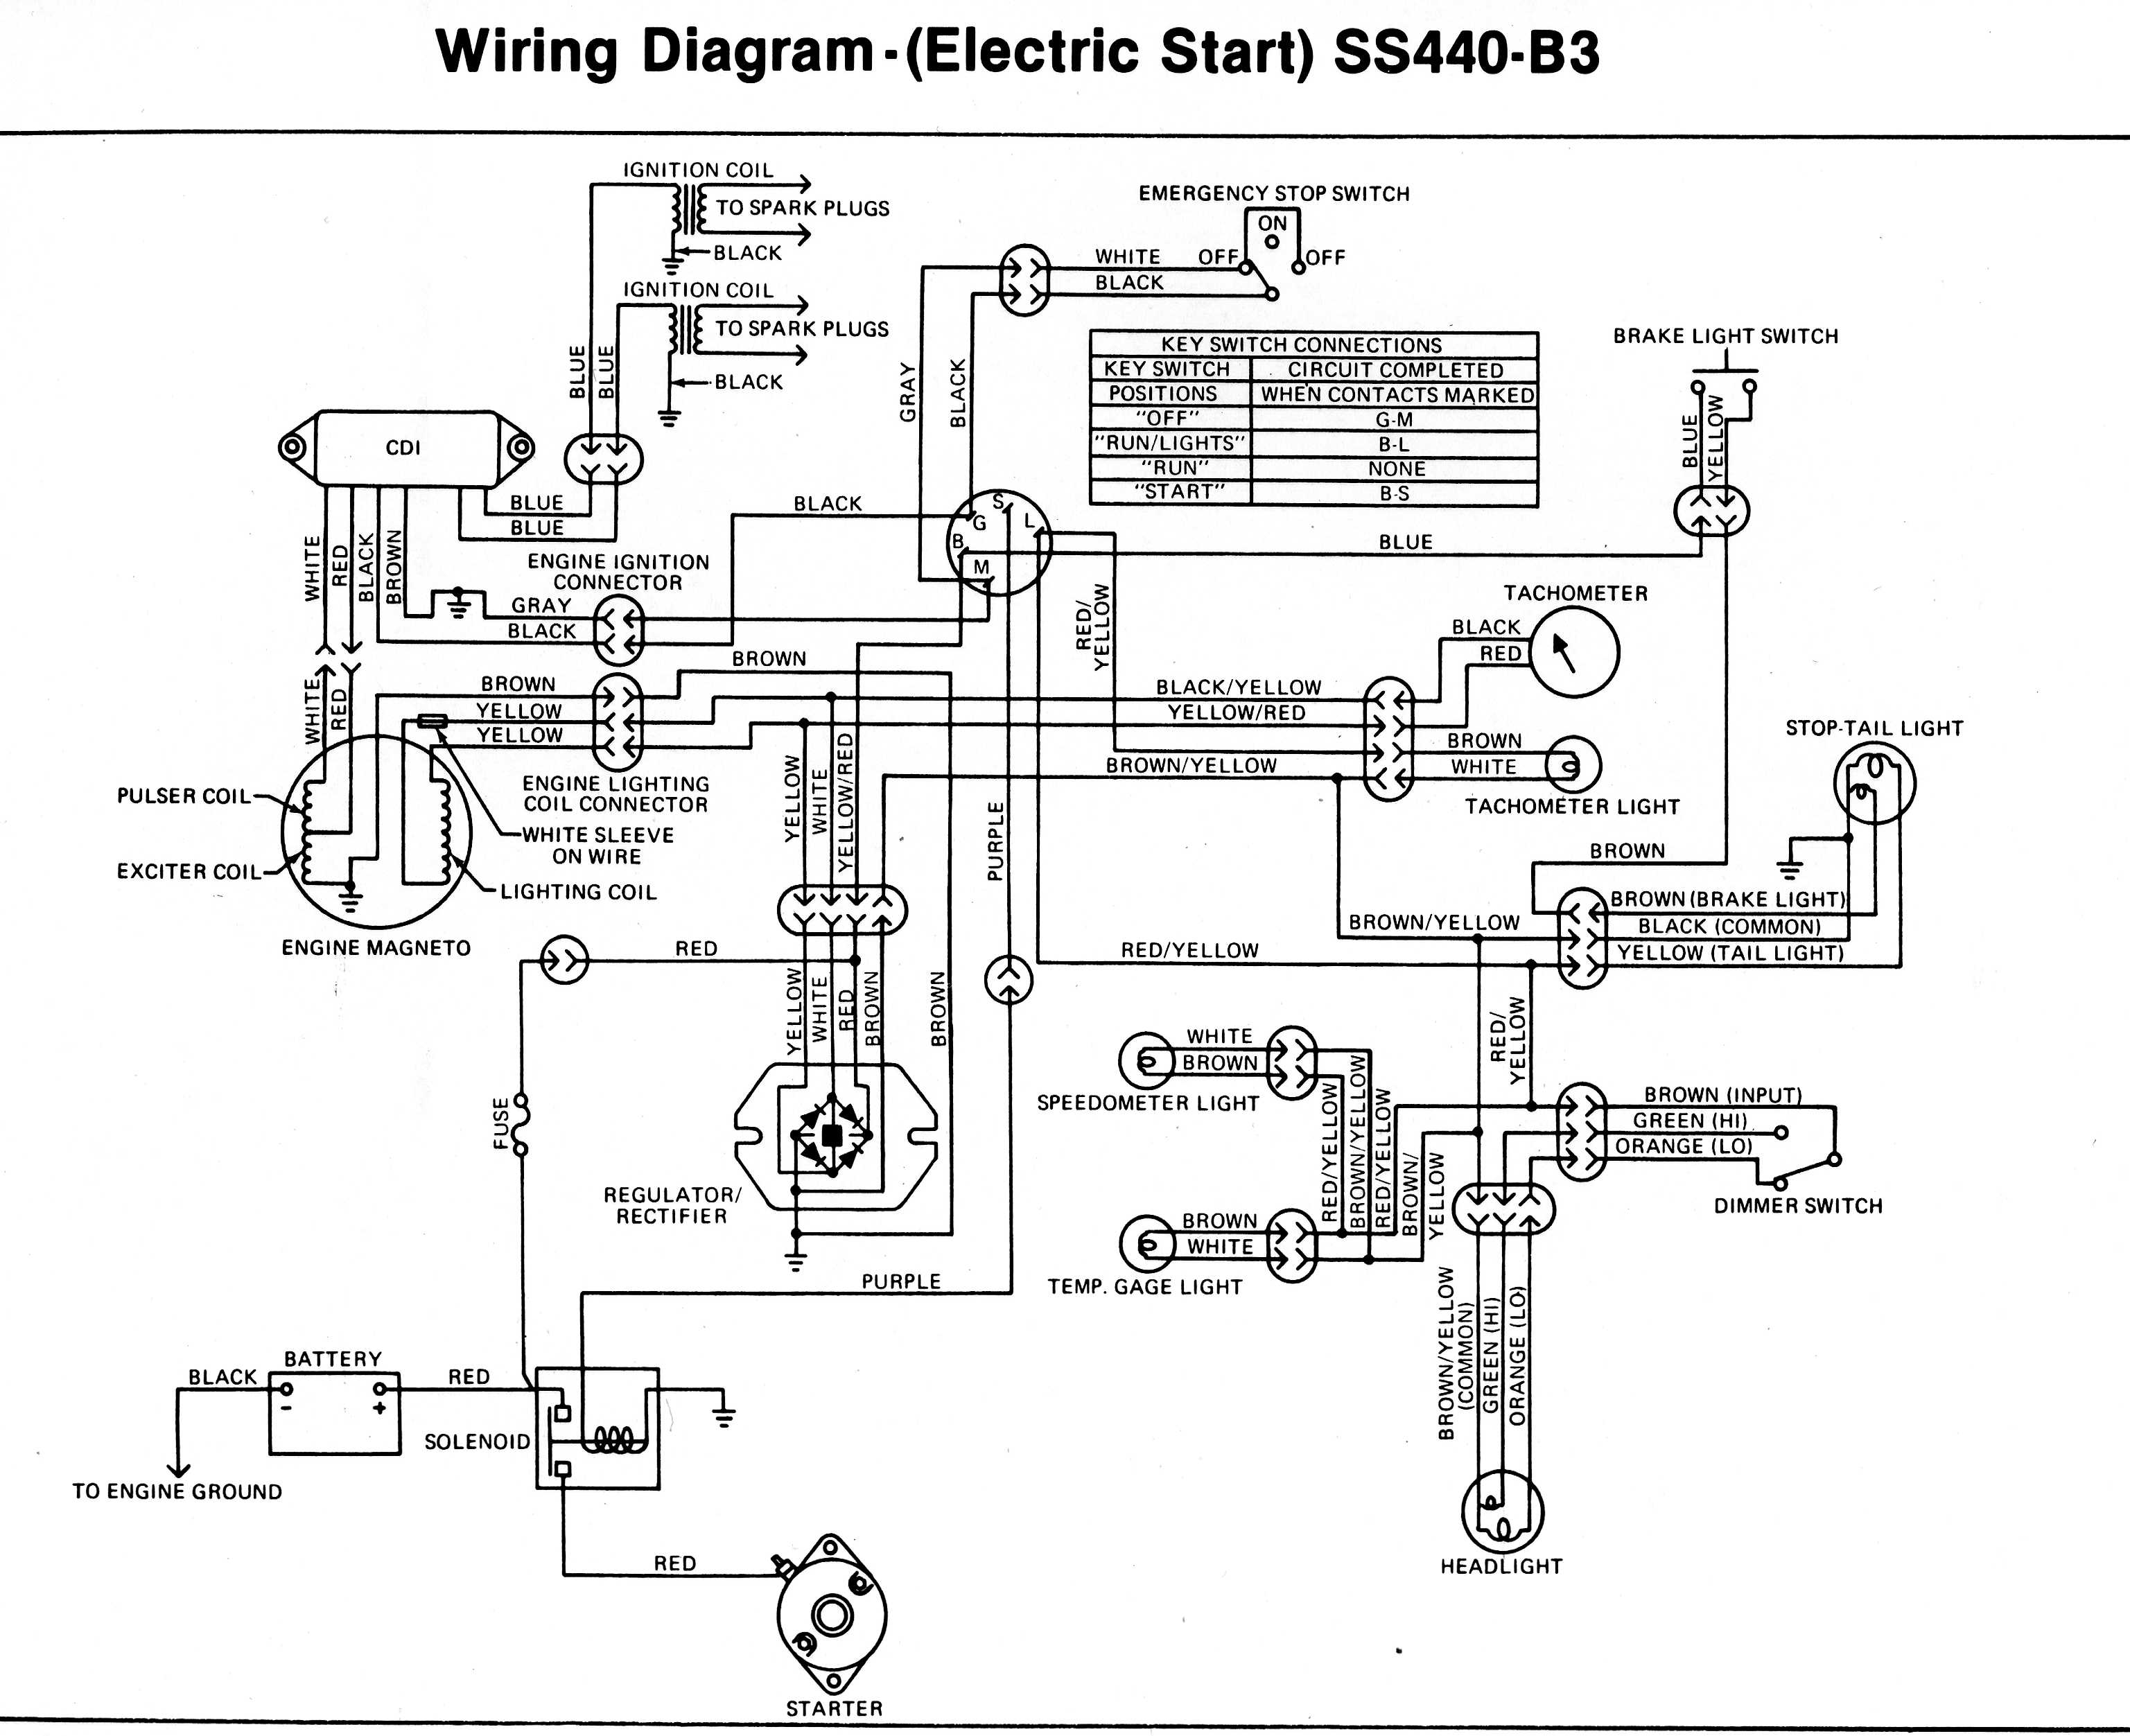 03 Saturn Ion Srs Wiring Diagram